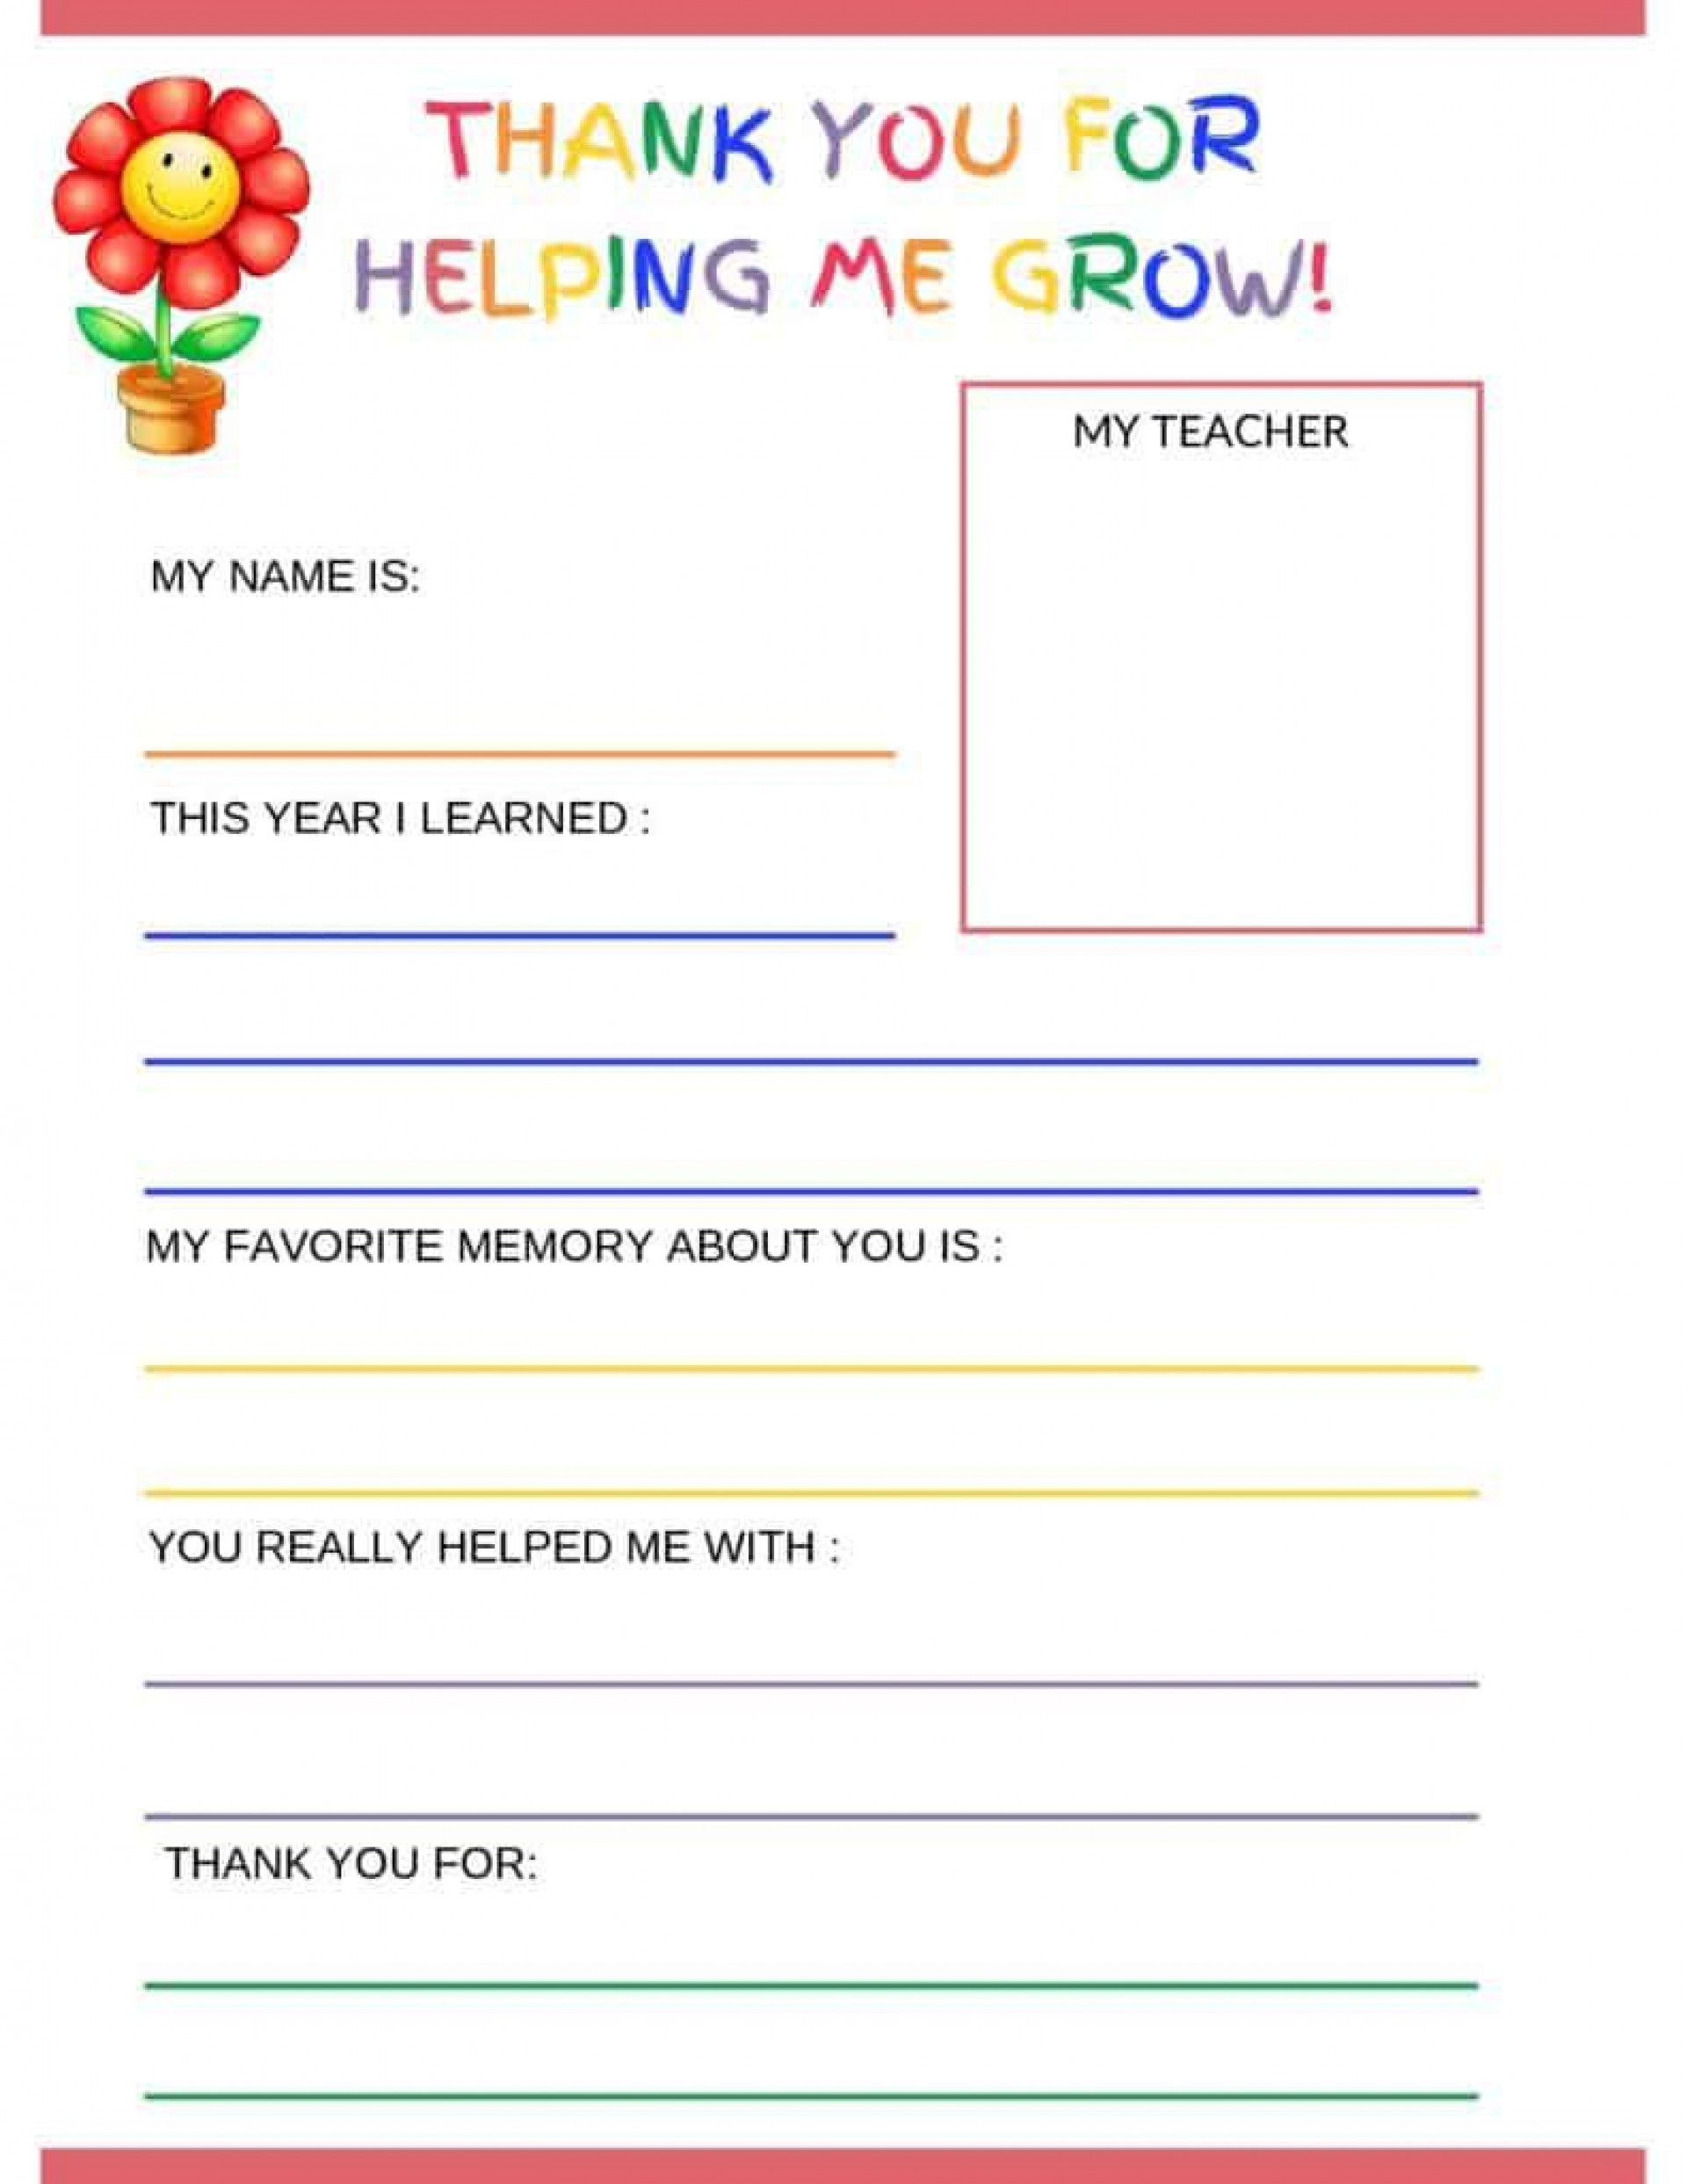 006 Imposing Thank You Note Template For Kid High Resolution  Kids Child Pdf Letter1920